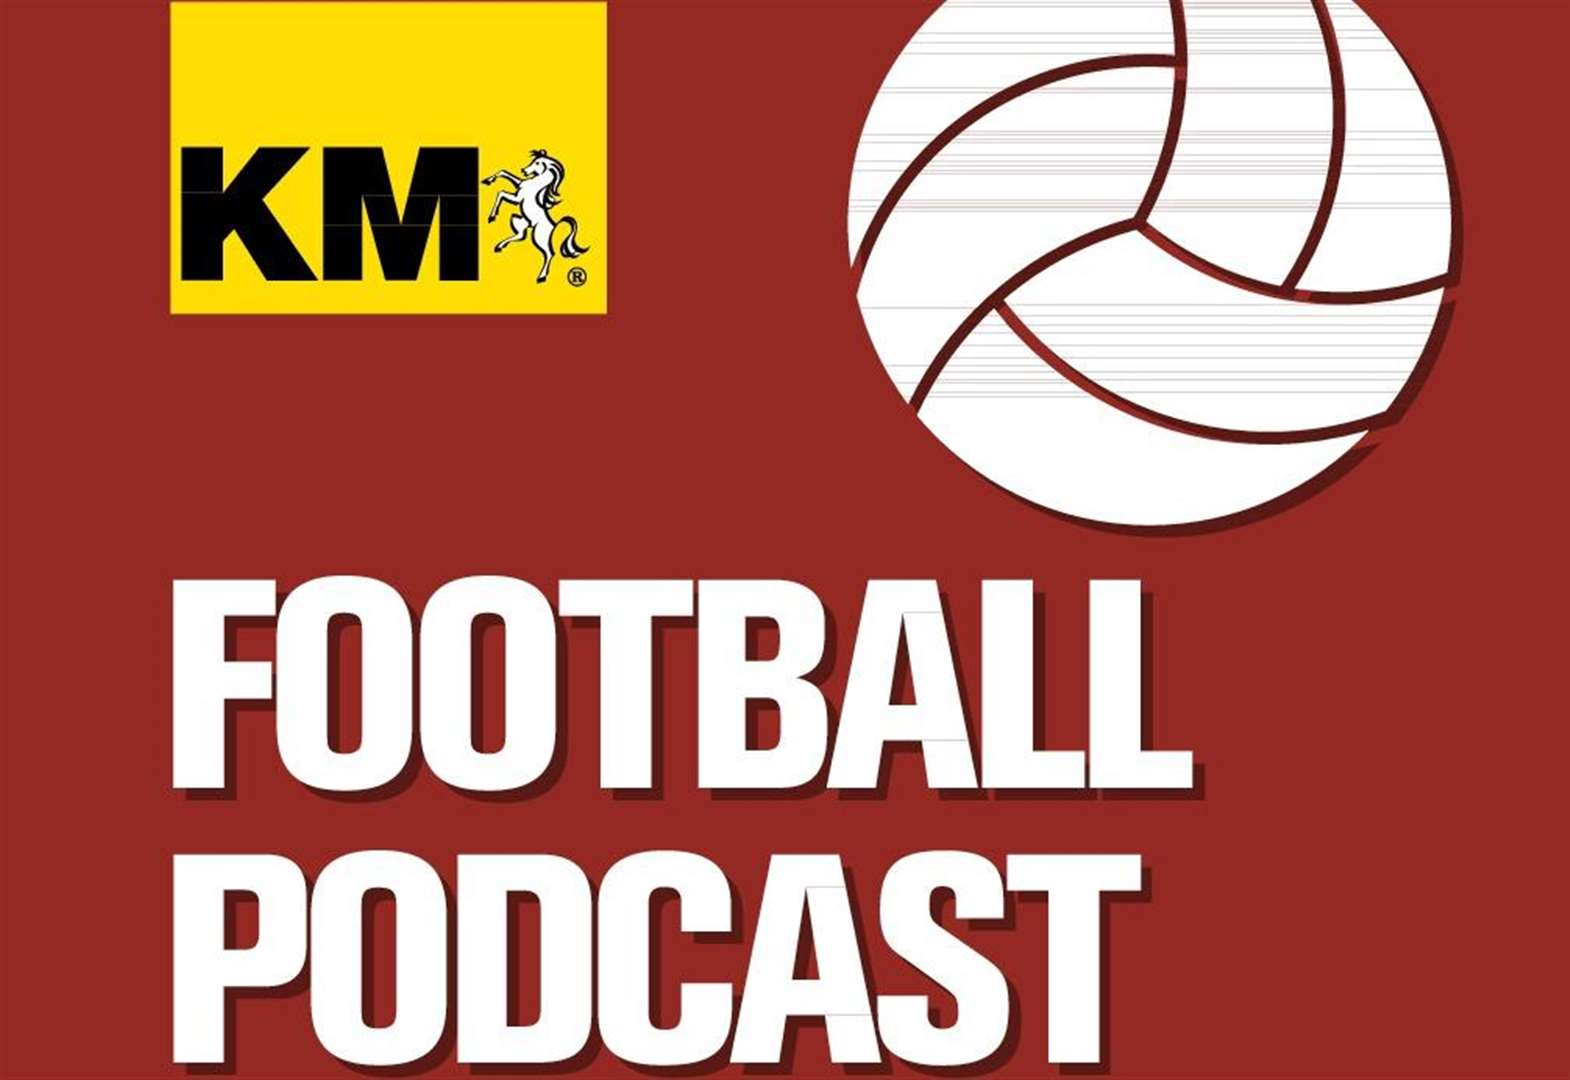 KM Football Podcast episode 6